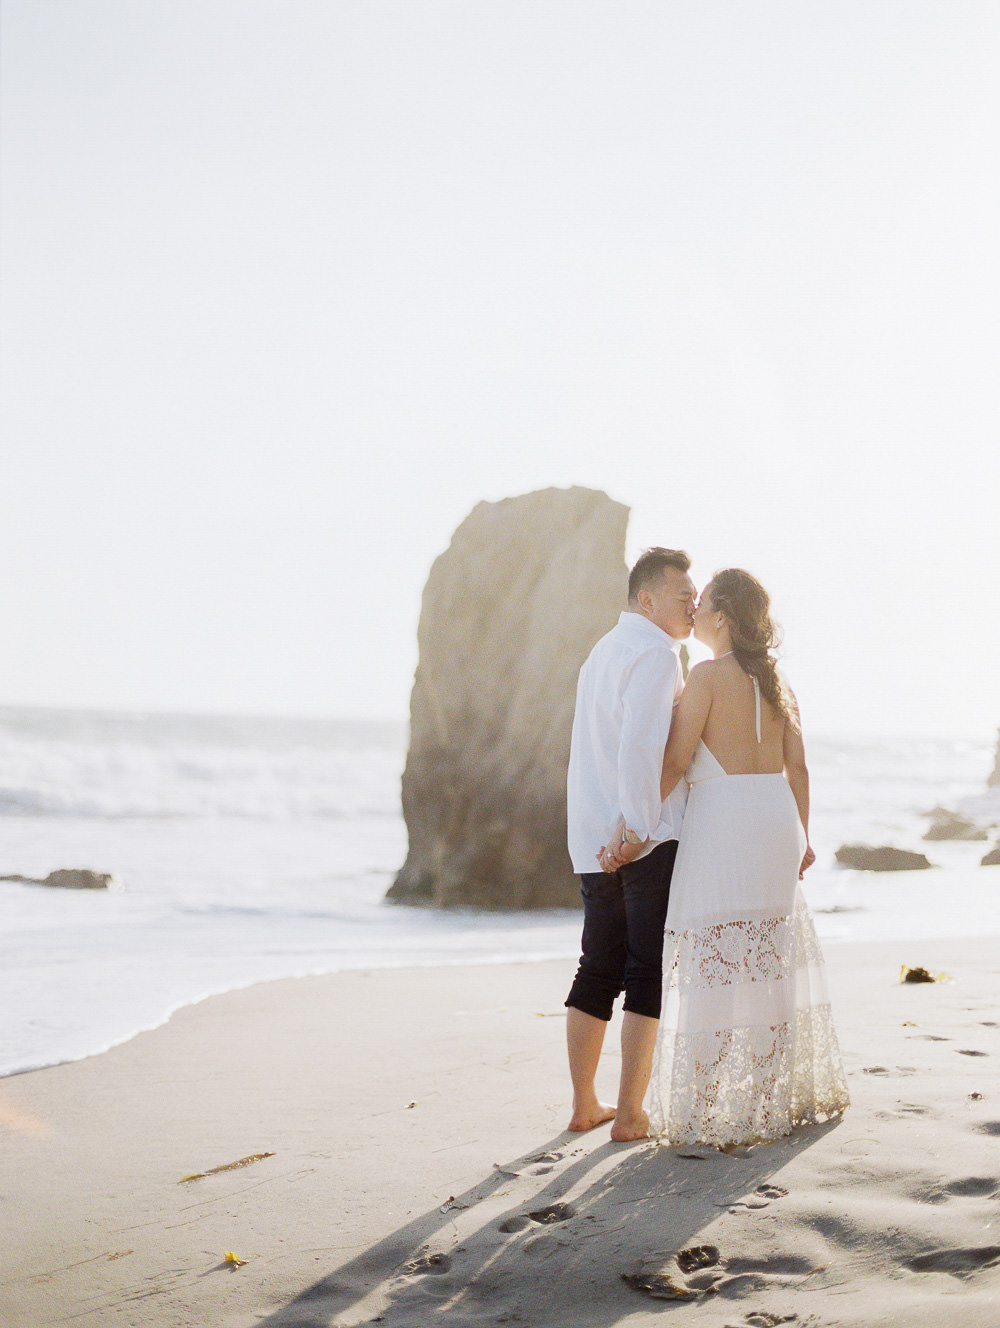 Sunset Engagement Session In Malibu CA